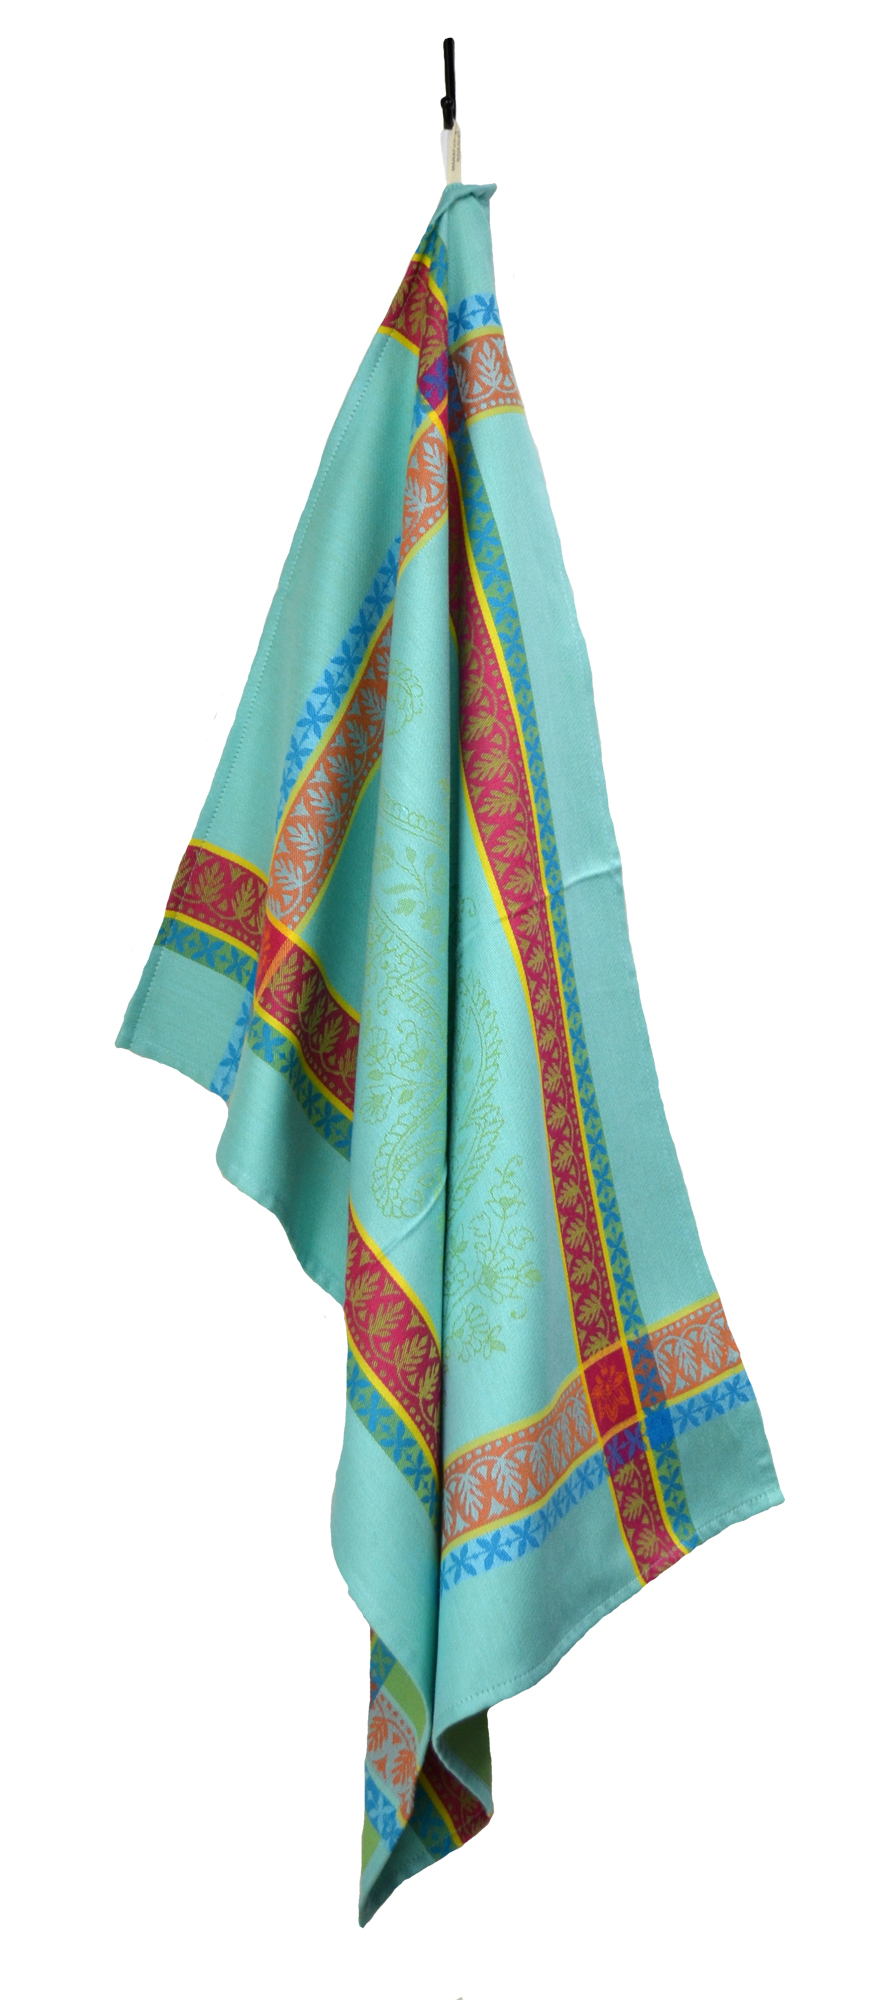 """Floral French Jacquard Tea Towel - Collection """"Cassis"""" Turquoise, Size: 21 x 28 inches, Price CAN$19.95"""